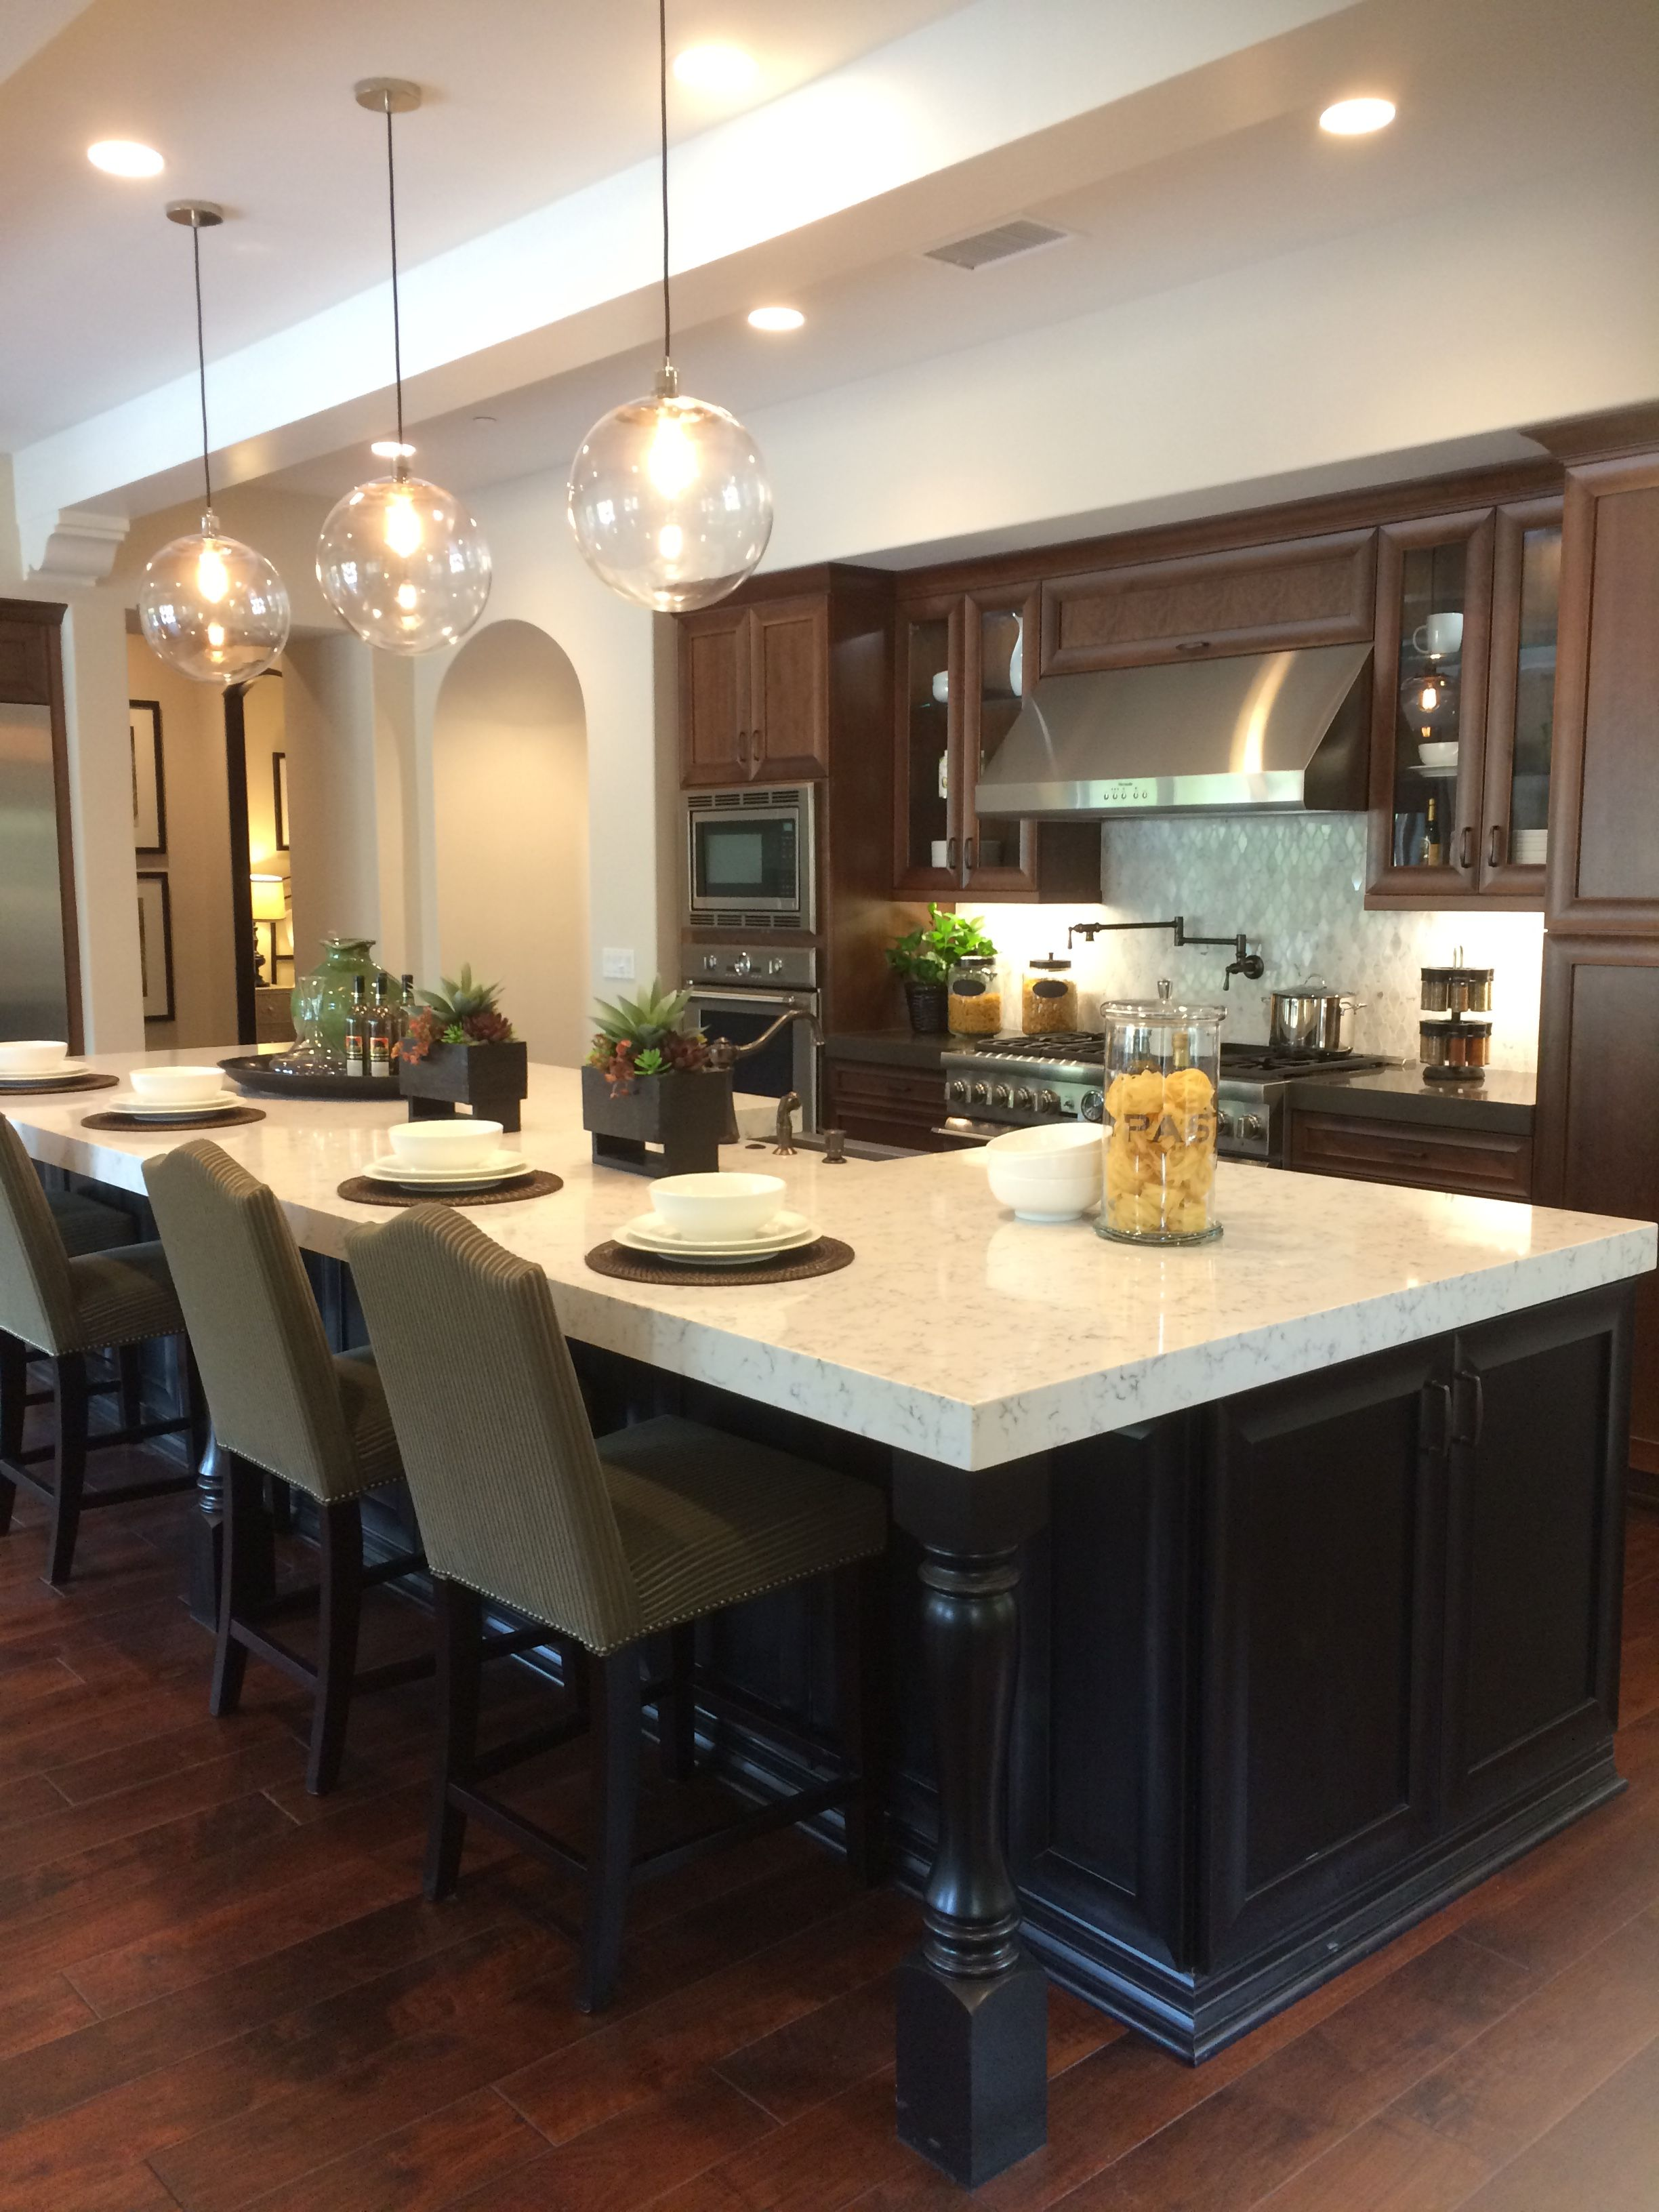 Absolutely Love The Island In This Kitchen